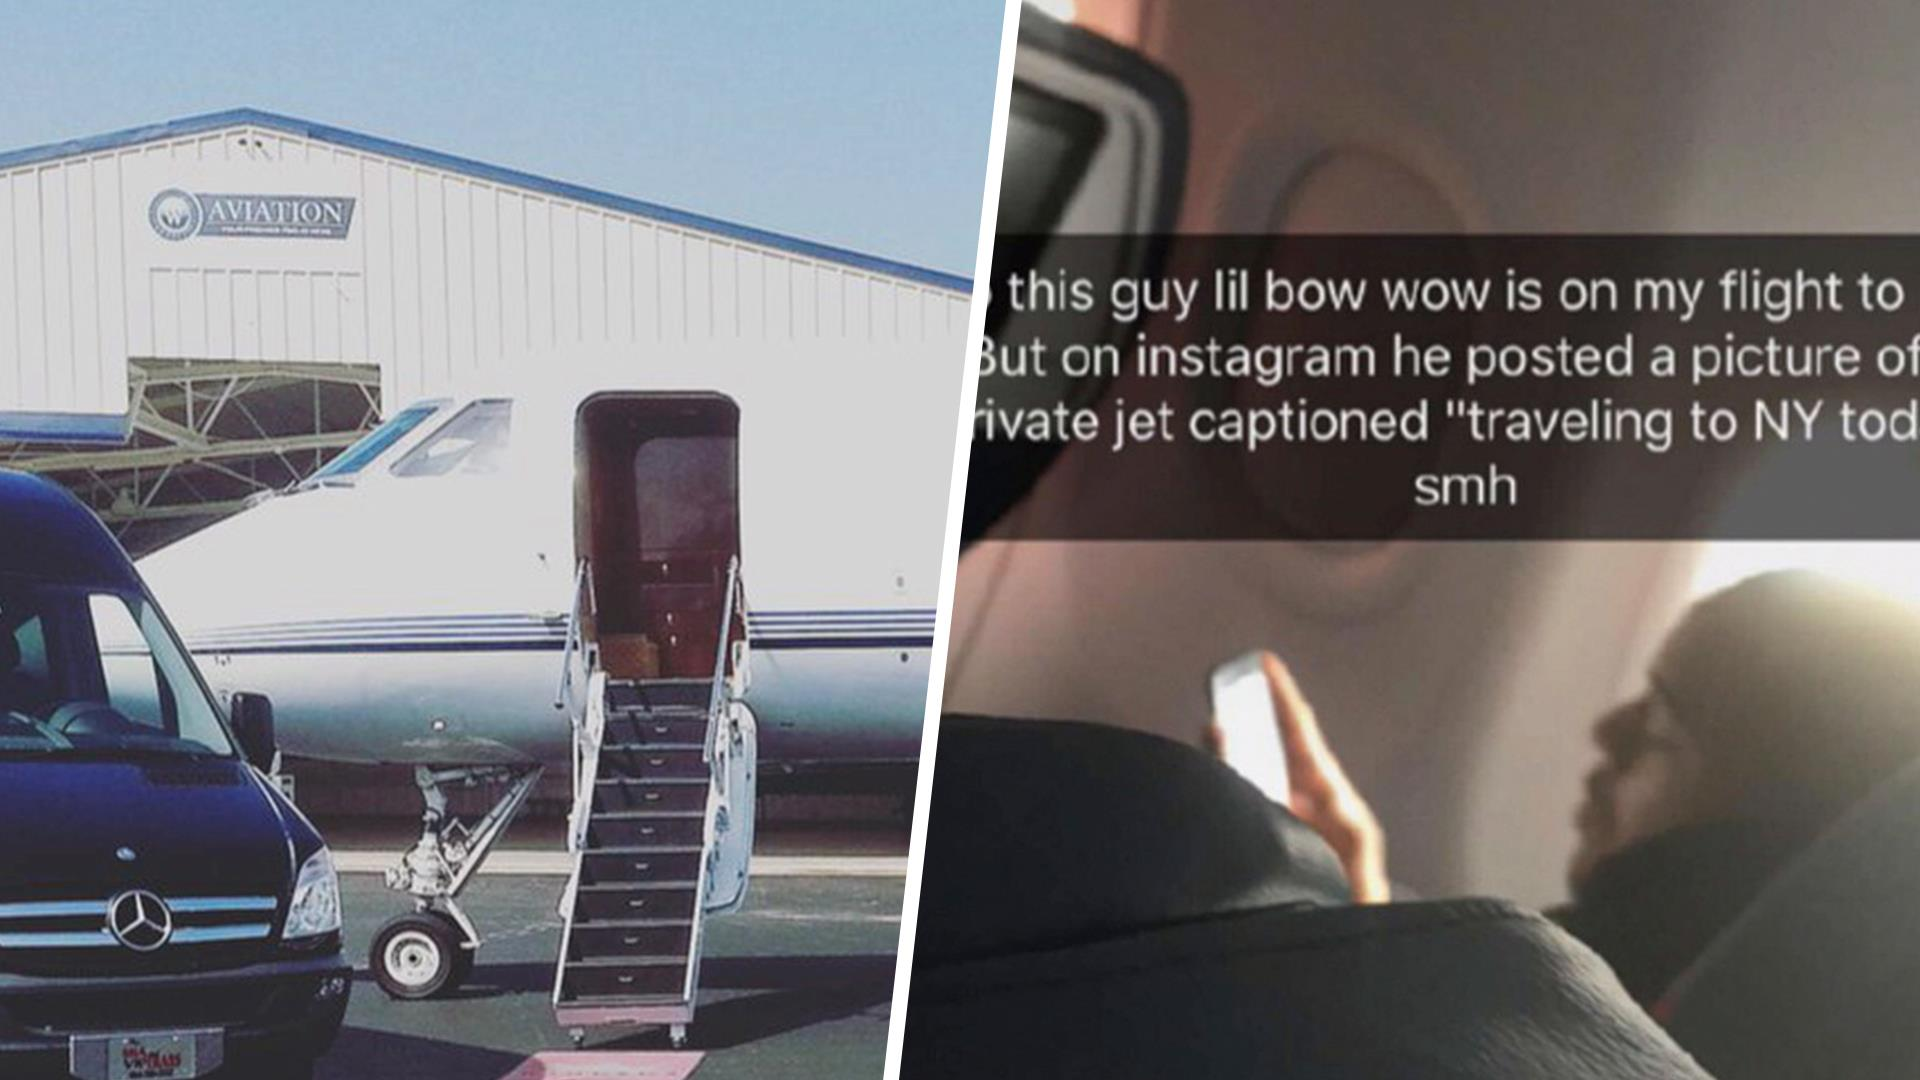 Rapper Bow Wow Mocked After Posting Photo Of Private Plane NBC - Rapper gets called out for lying online internet starts its own challenge in response